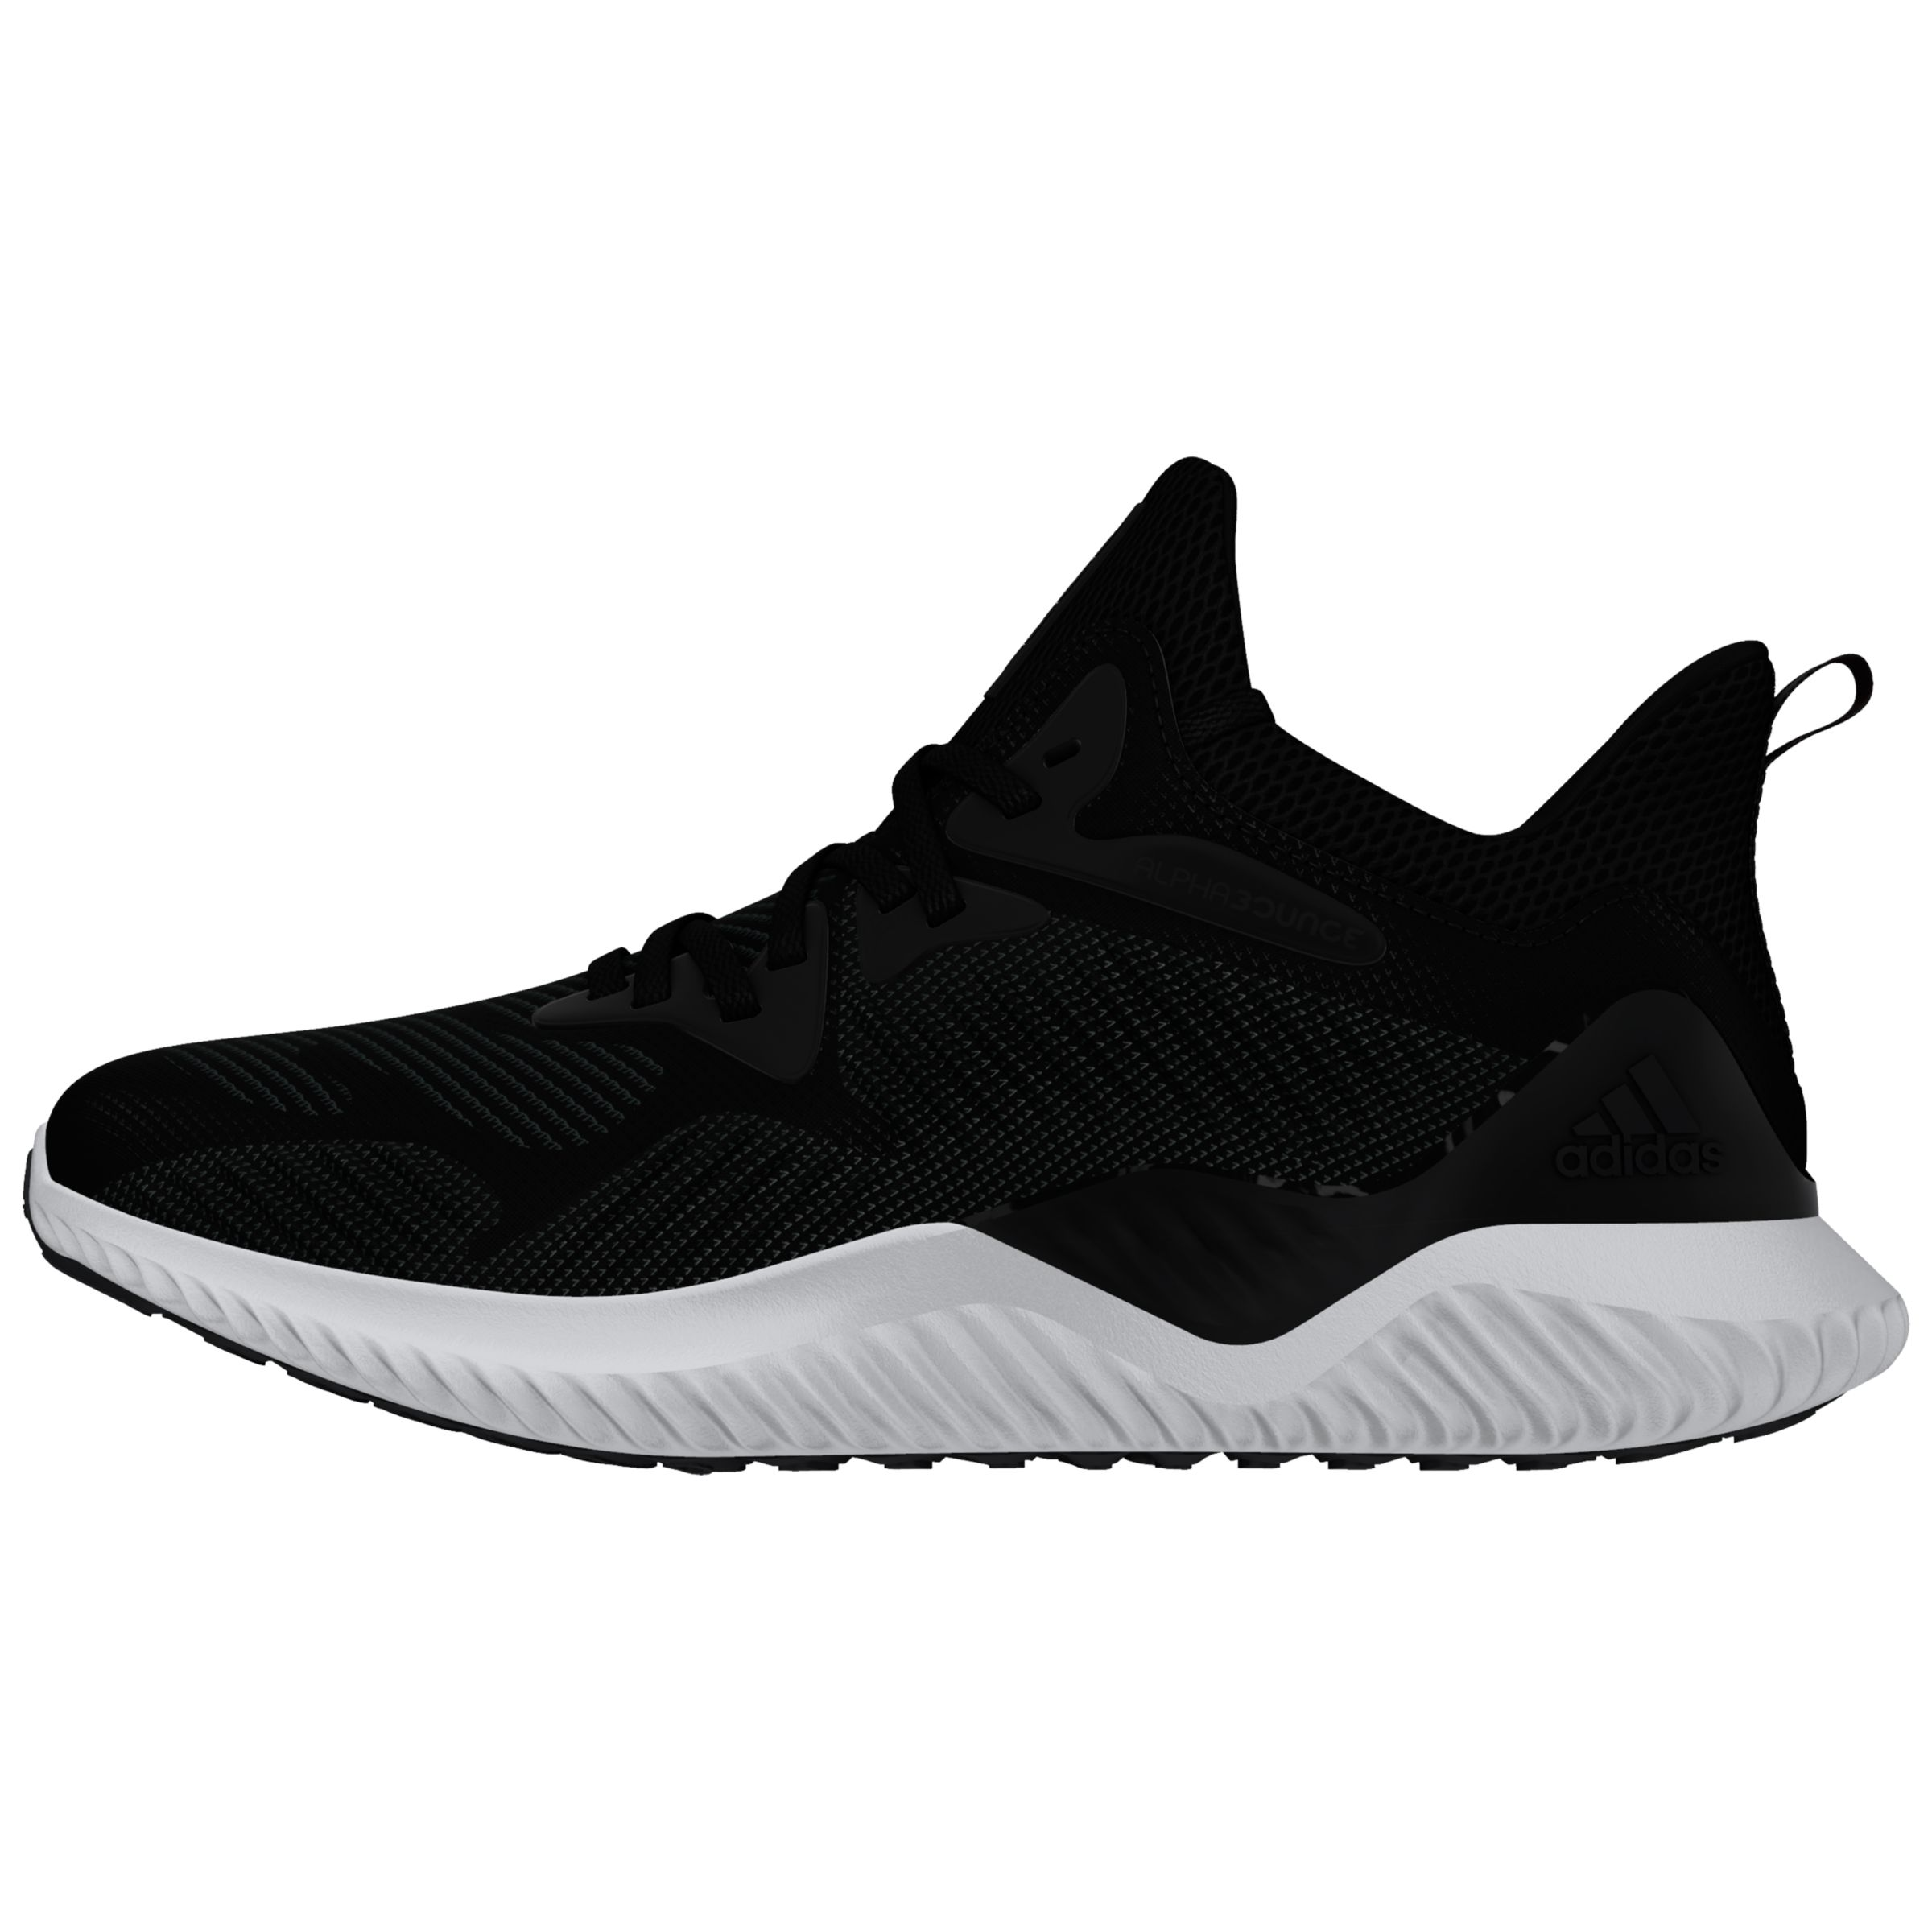 timeless design 6e7f2 9b64a adidas Alphabounce Beyond Womens Running Shoes at John Lewis